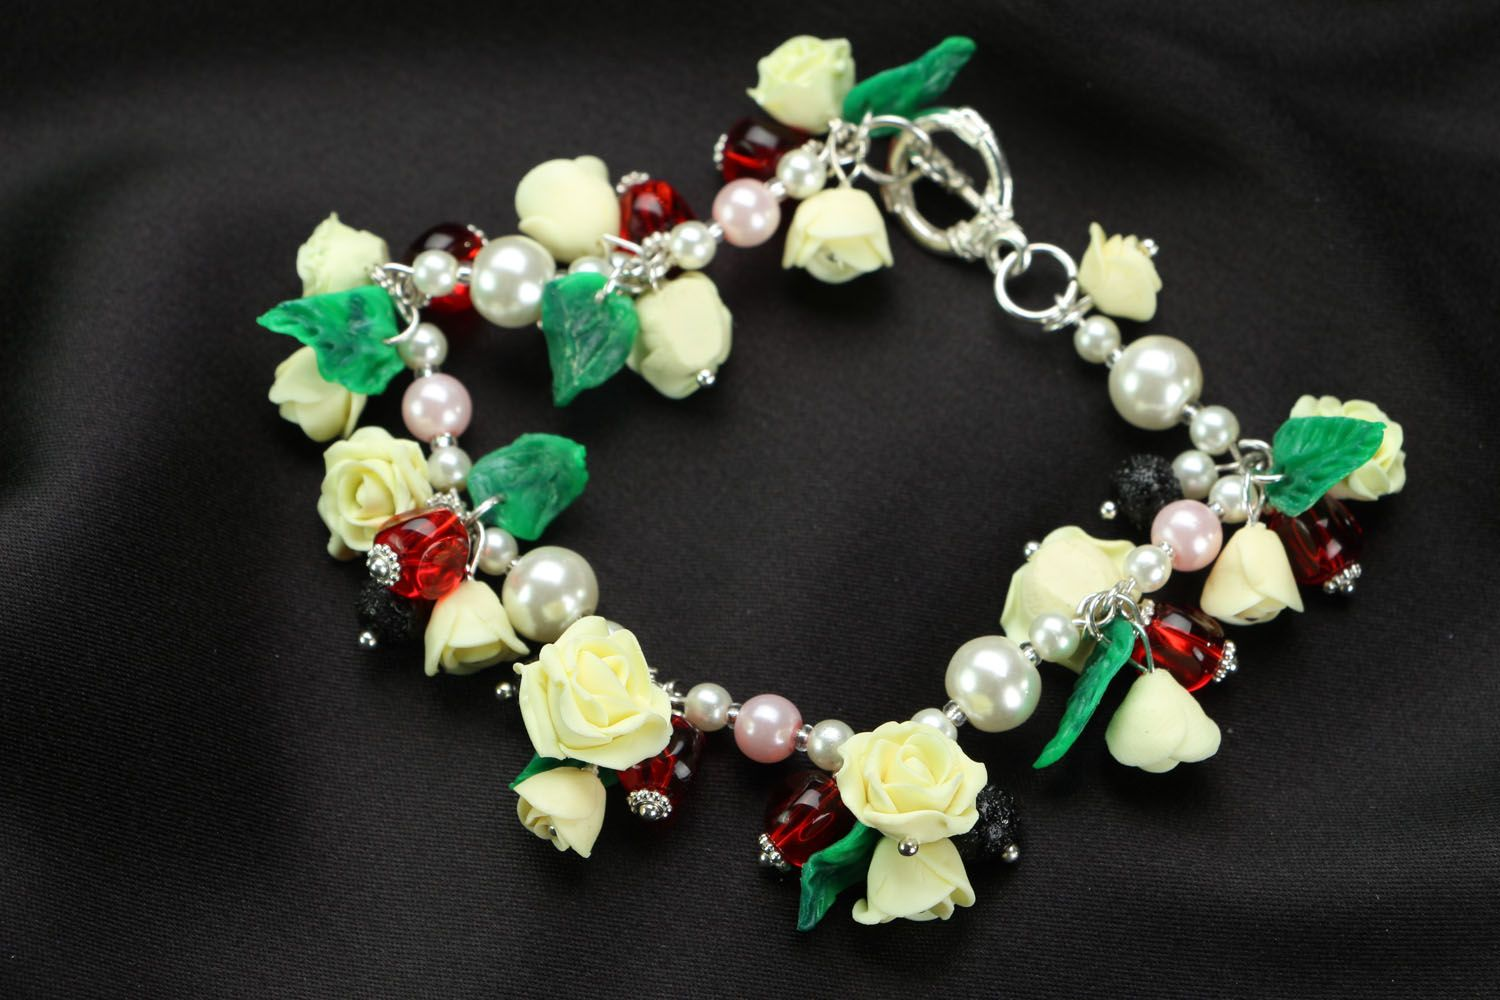 Bracelet with charms in the shape of roses photo 2